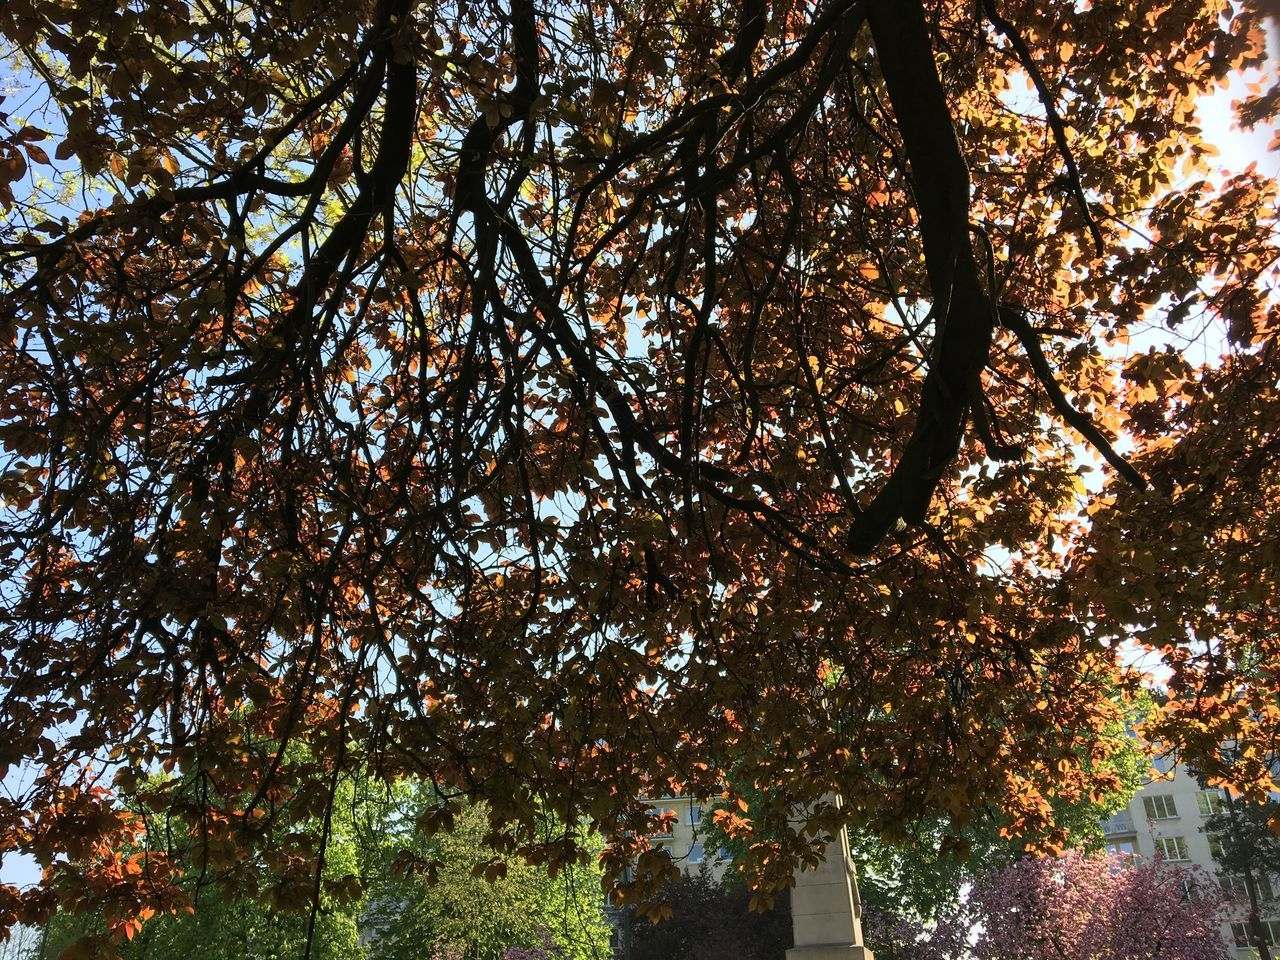 tree, autumn, nature, growth, leaf, change, low angle view, beauty in nature, day, outdoors, branch, no people, tranquility, scenics, sky